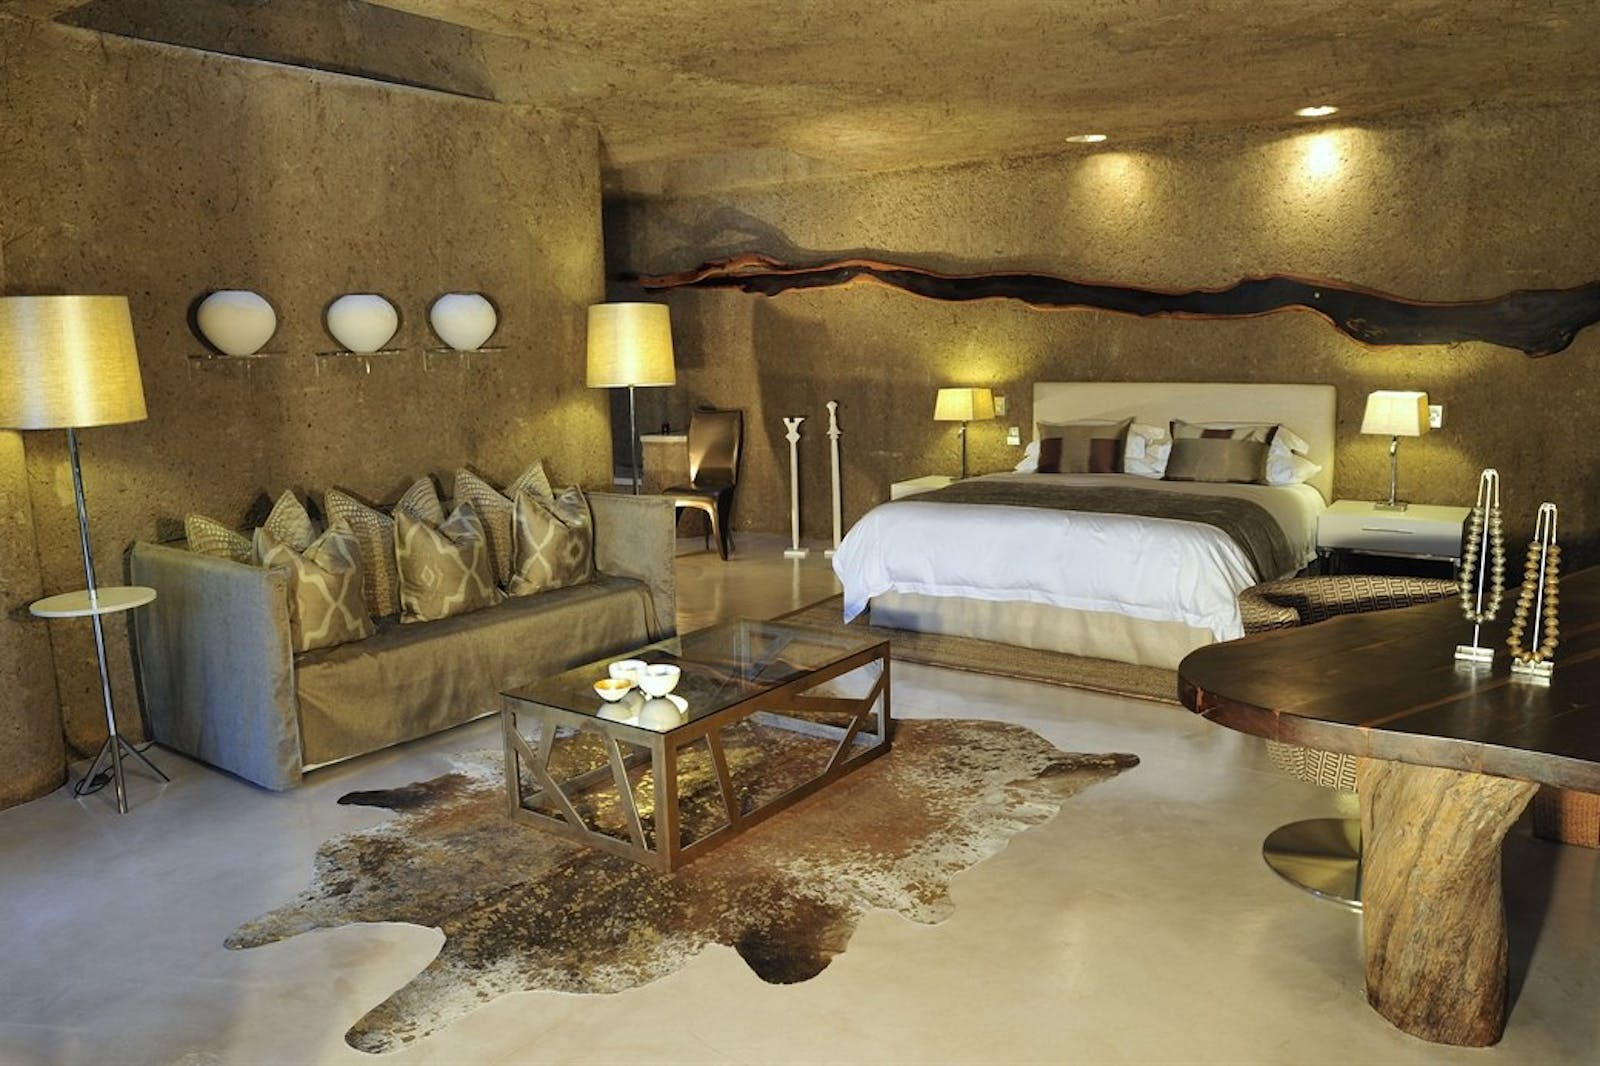 Bedroom area at Sabi Sabi Earth Lodge, South Africa